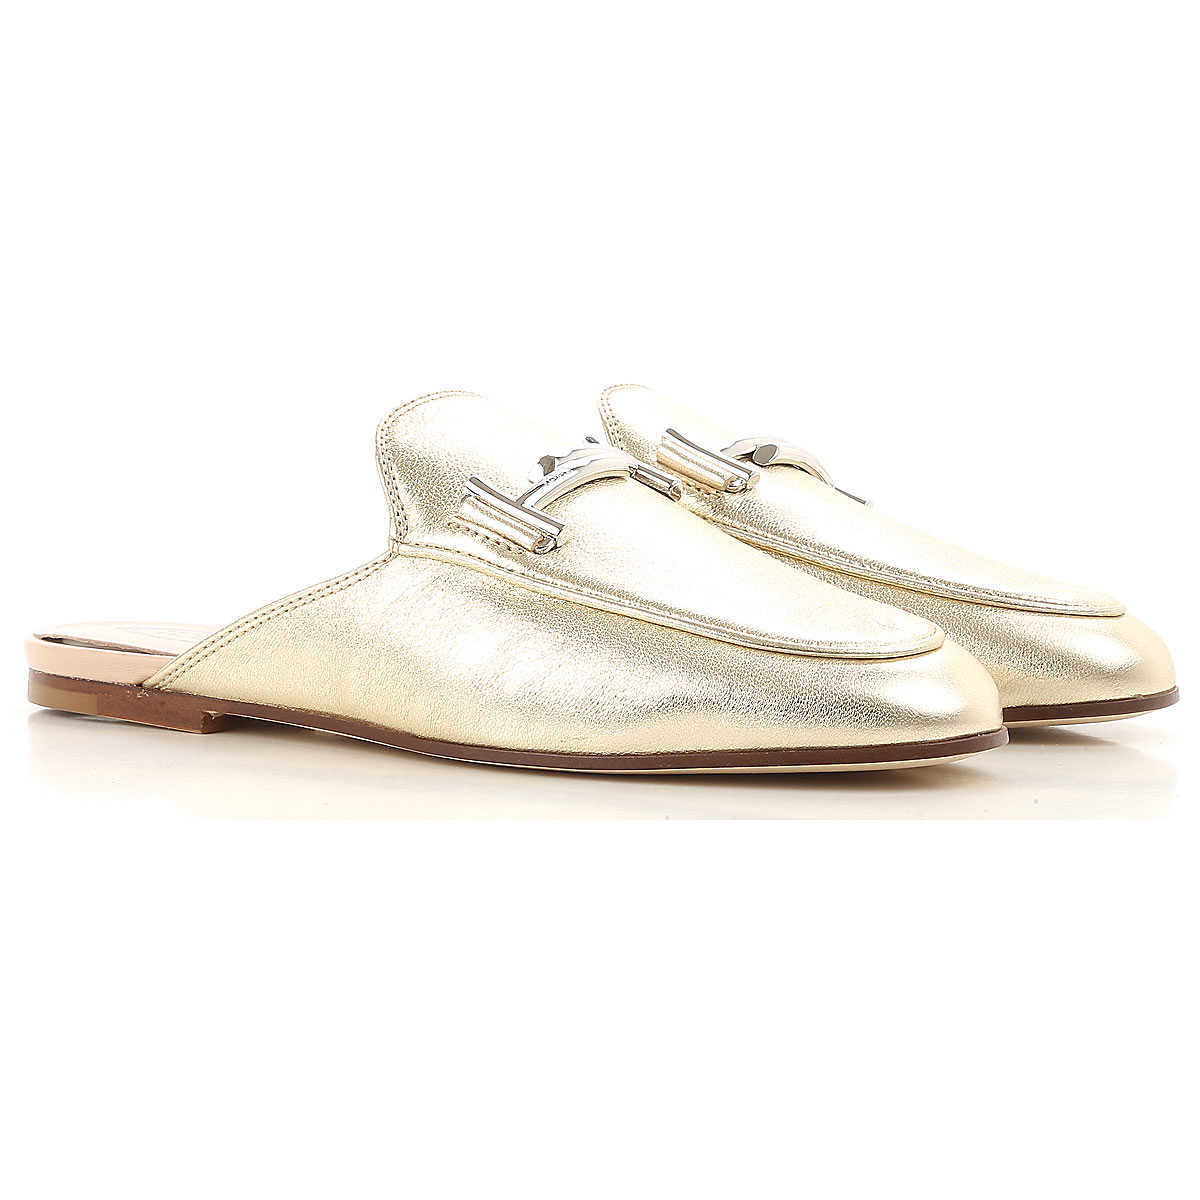 Tods Loafers for Women On Sale Platinum UK - GOOFASH